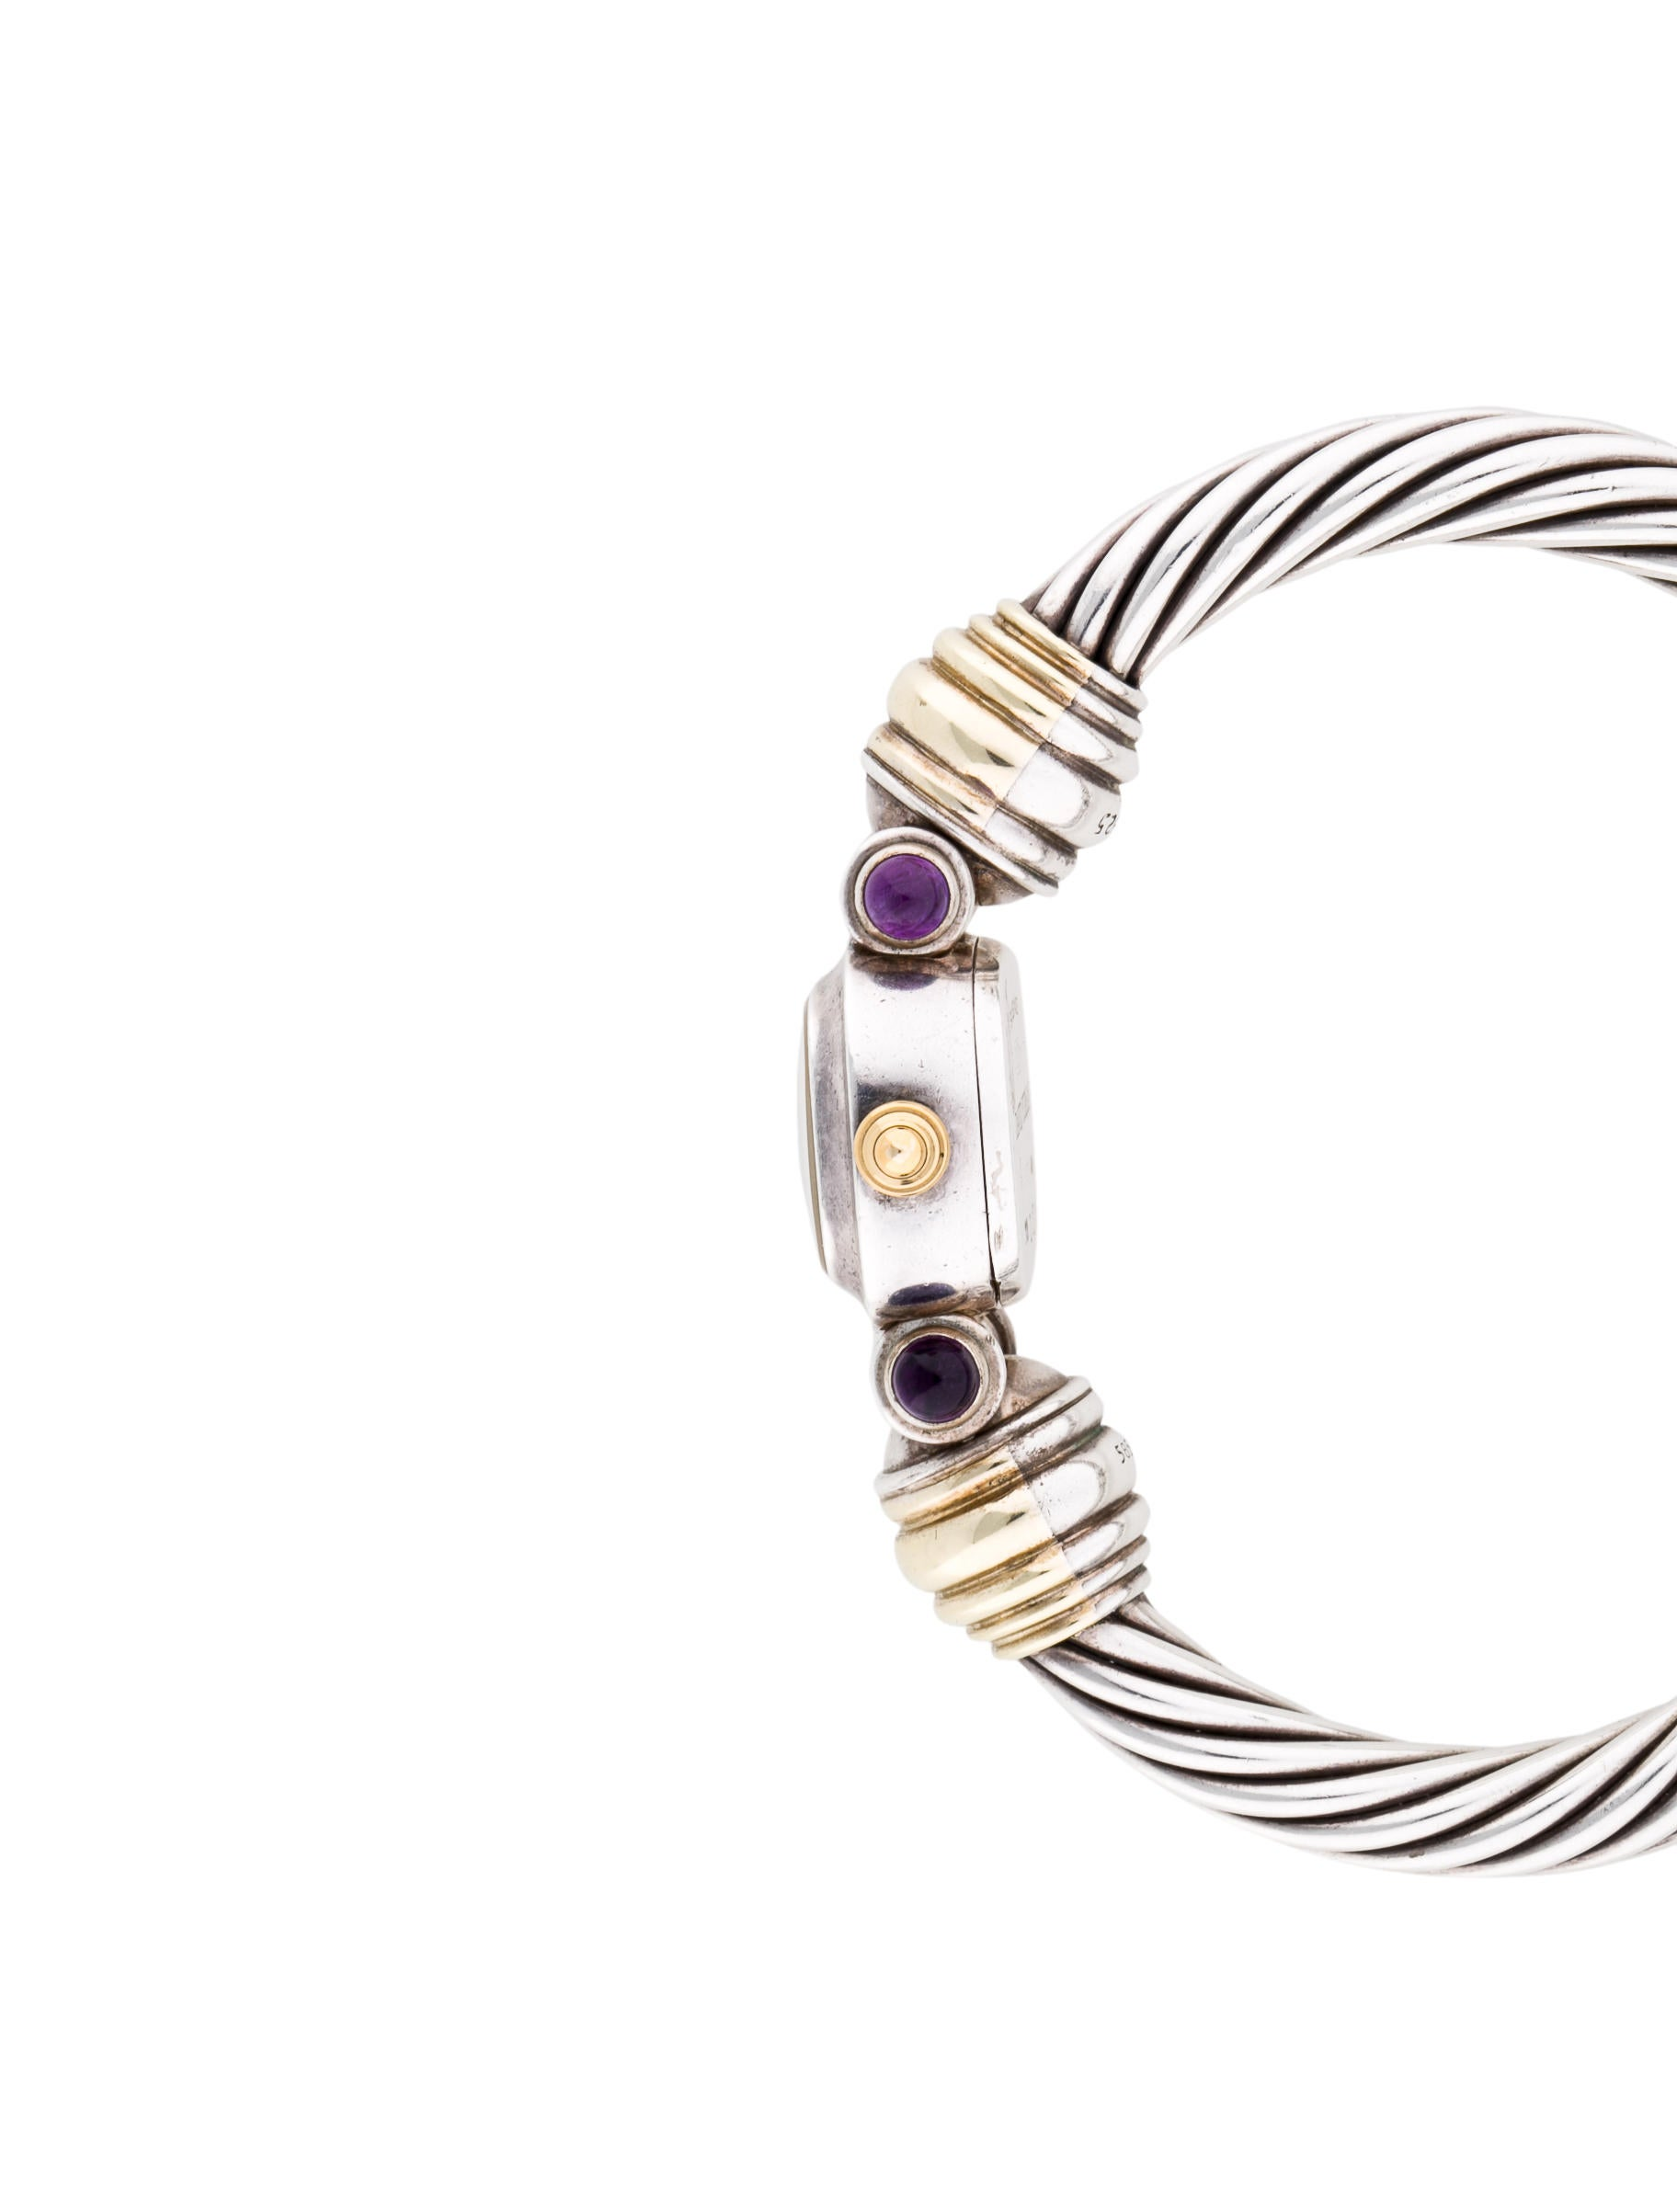 David yurman two tone cable bracelet watch bracelet for David yurman inspired bracelet cable